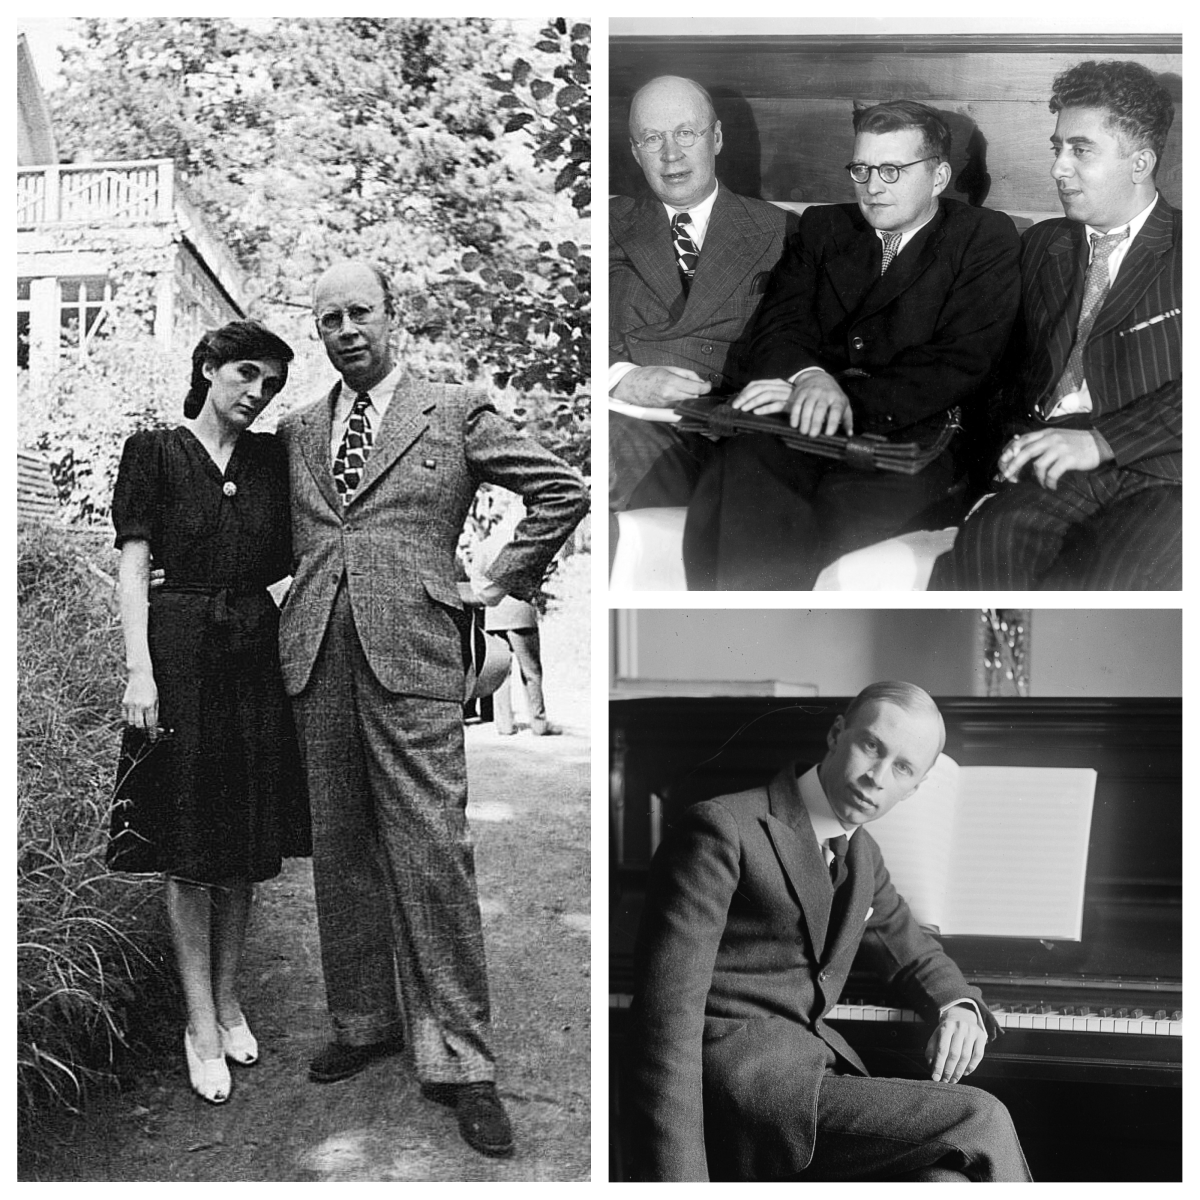 Public domain images of Prokofiev and others from wikimedia.org